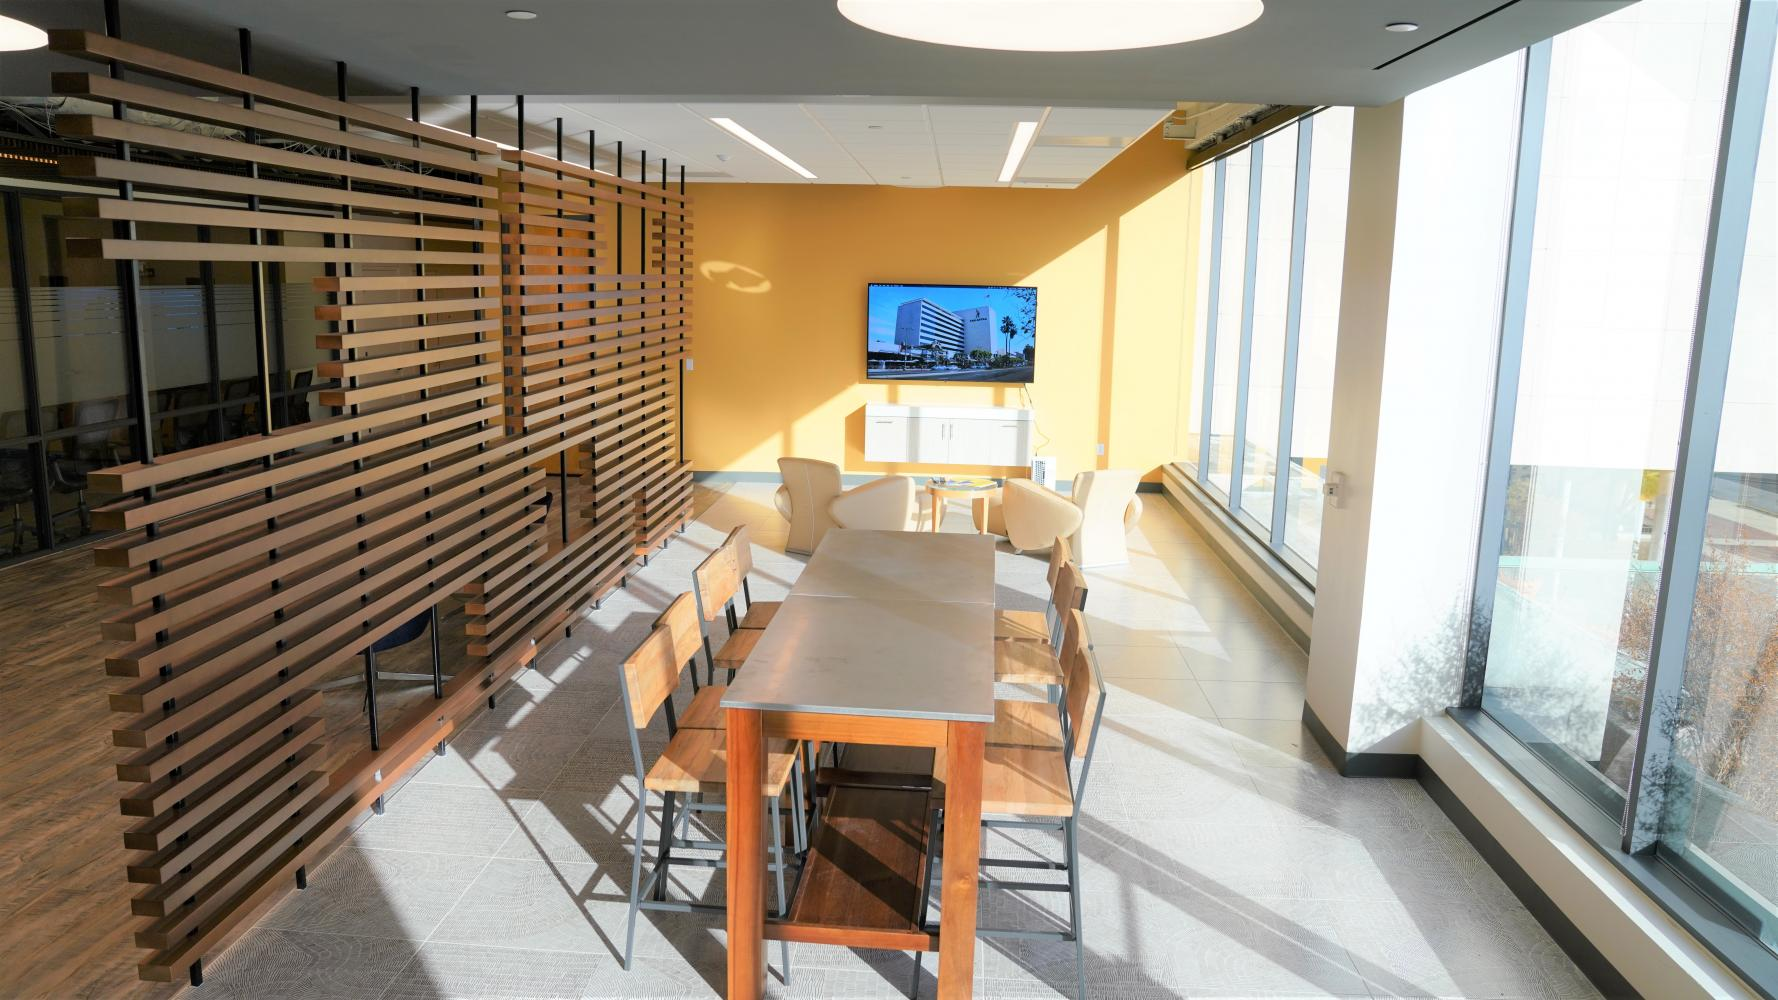 Dining Tables with 4 chairs on each side and a TV mounted on the wall